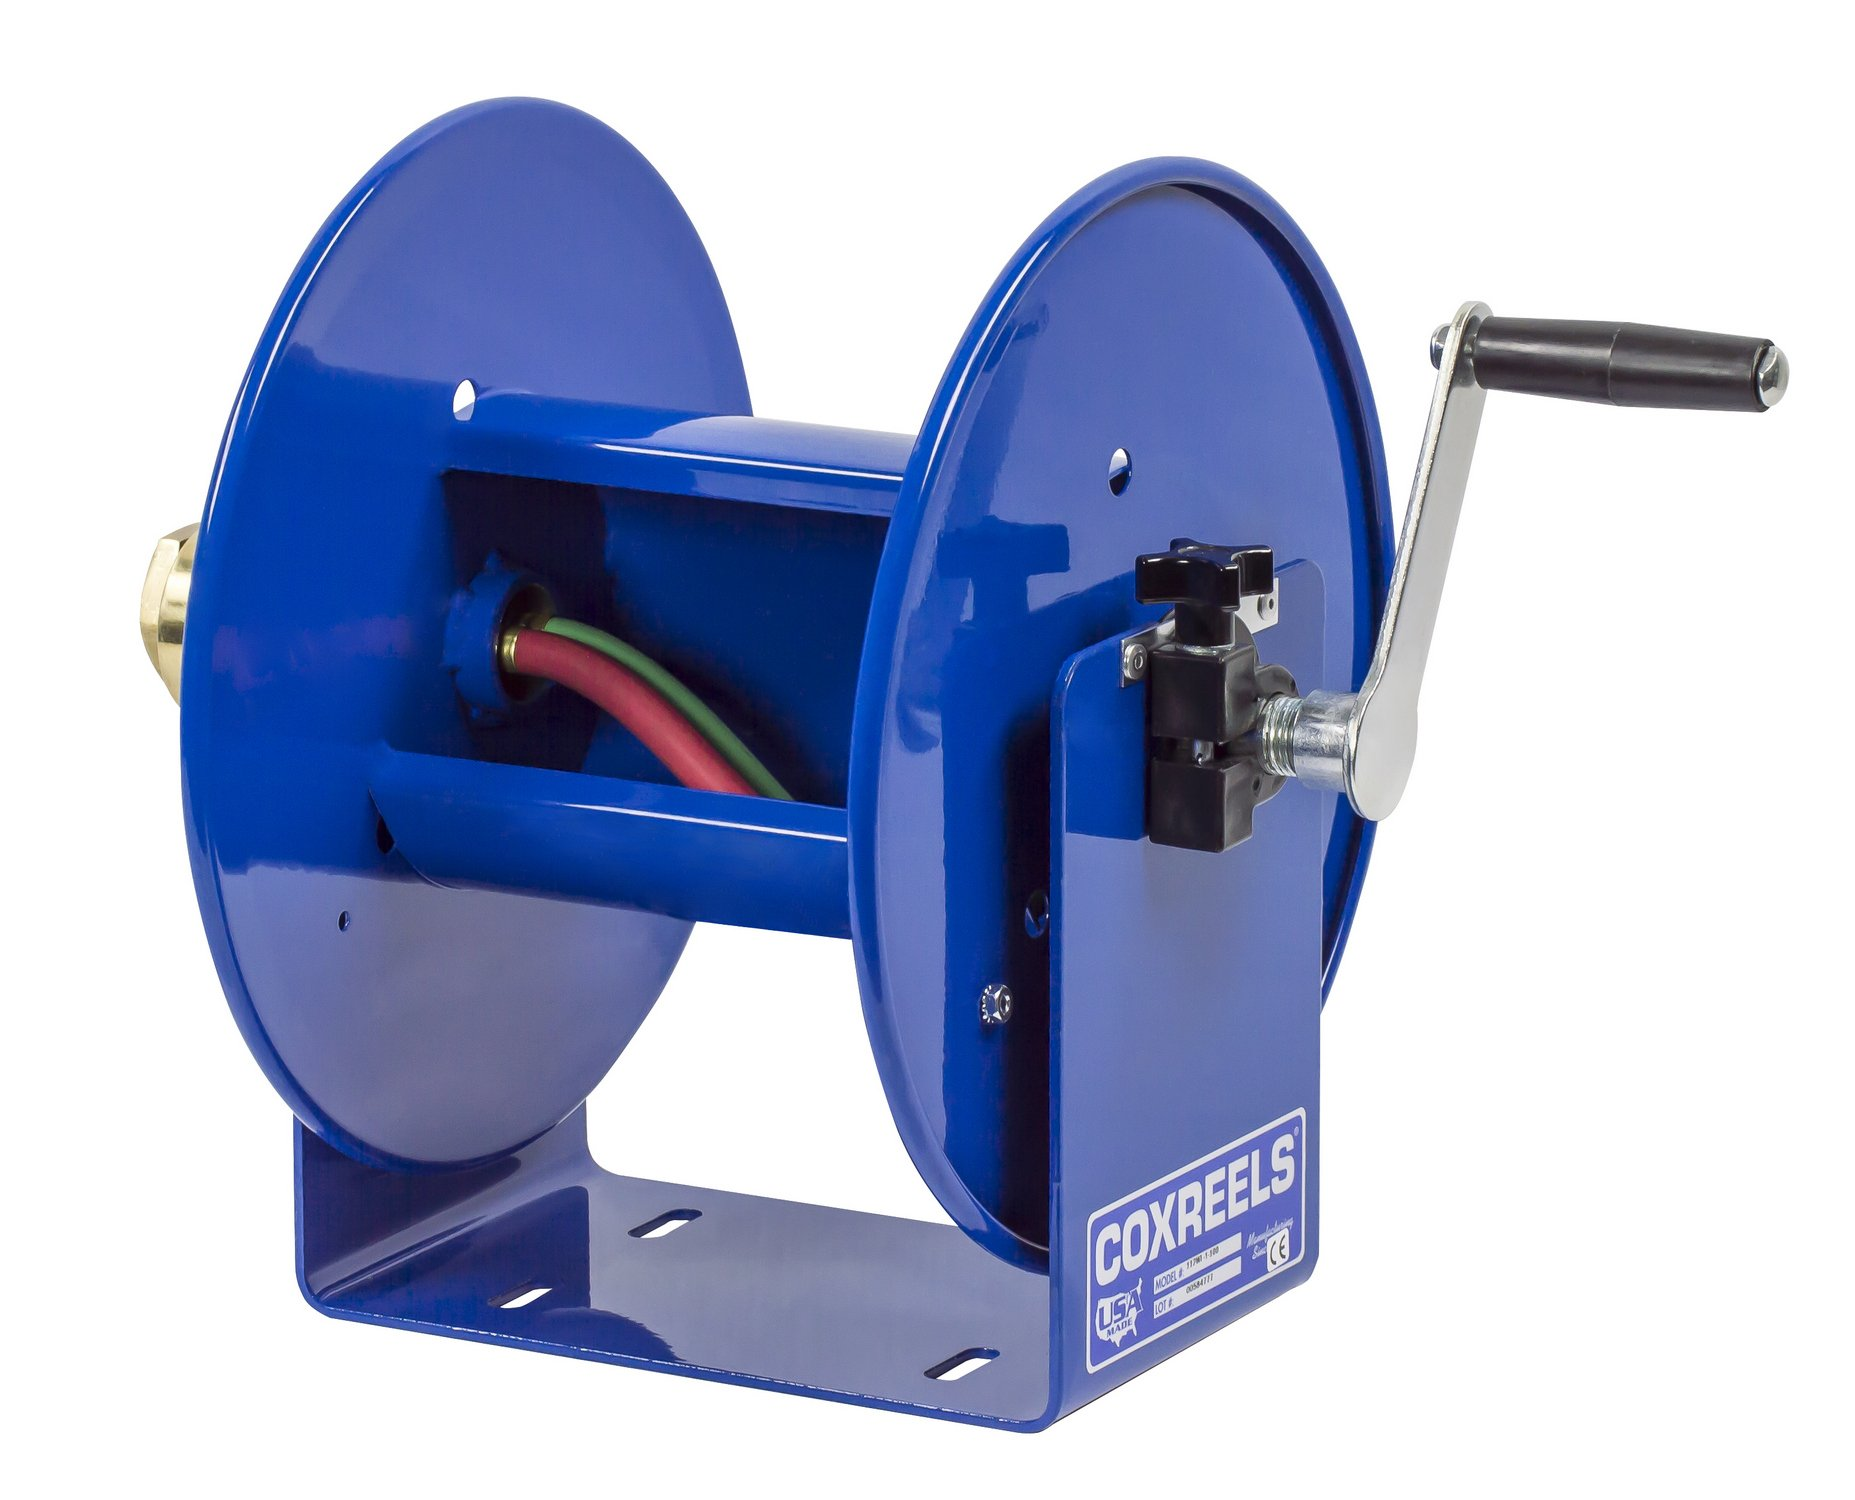 Coxreels 112WL-1-100 Welding Hand Crank Hose Reel: 1/4'' I.D., 100' twin oxy-acetylene welding hose capacity, less hose, 200 PSI